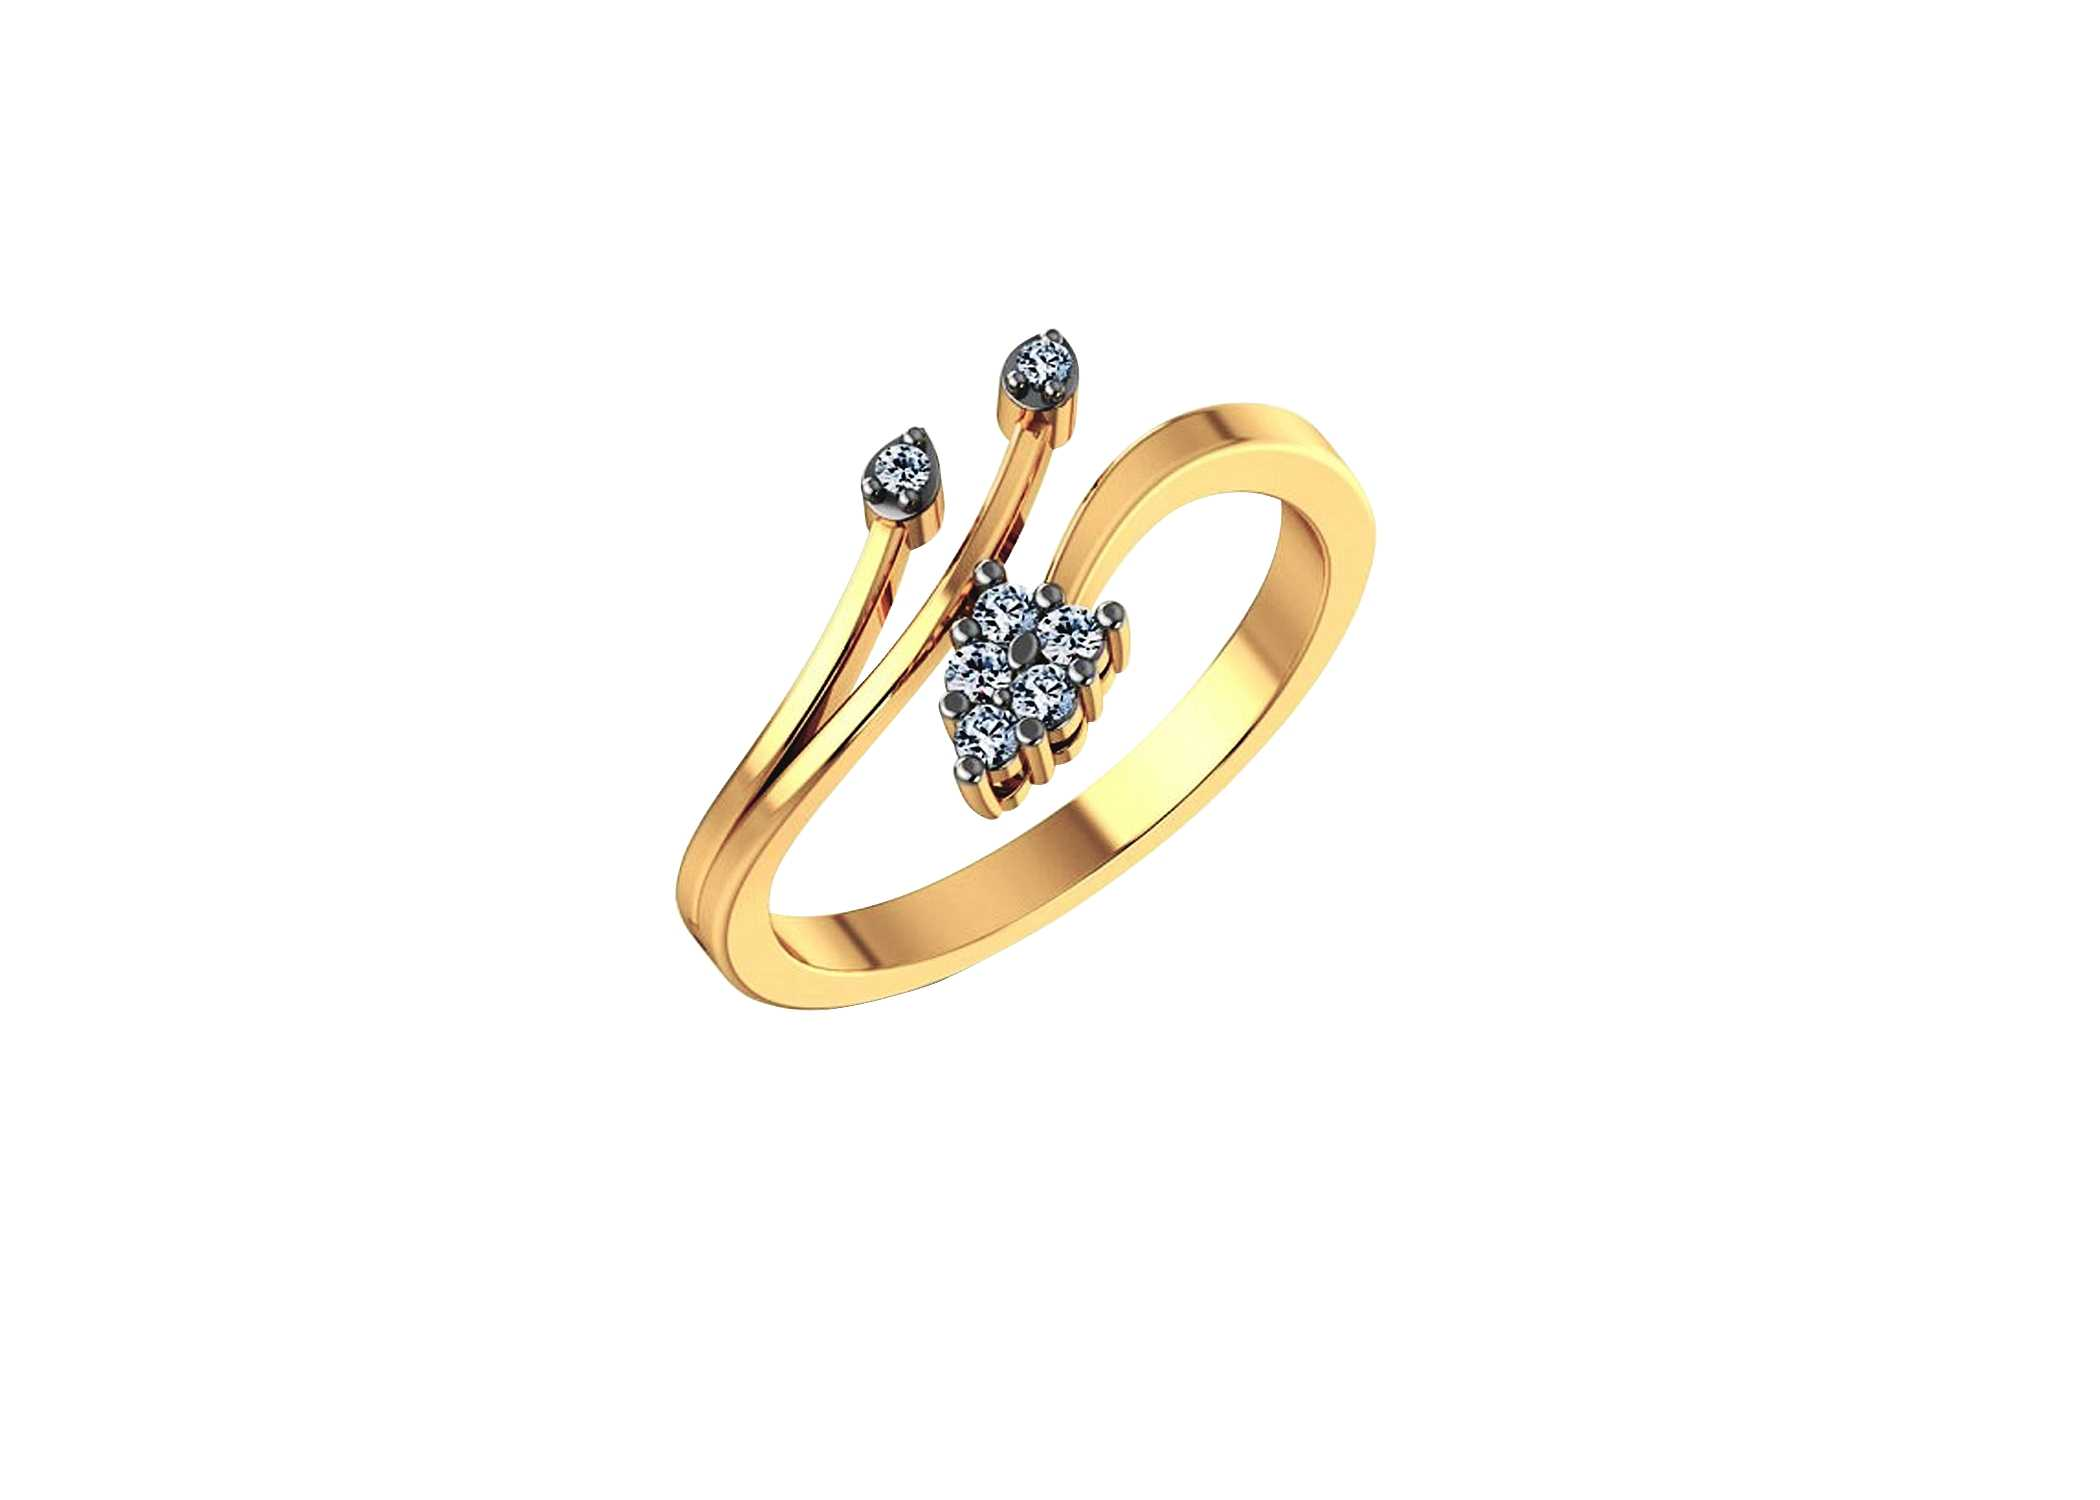 laurie sarah ring designs il right fullxfull product engagement home chrysoberyl enjg jewellery halo rings hand diamond